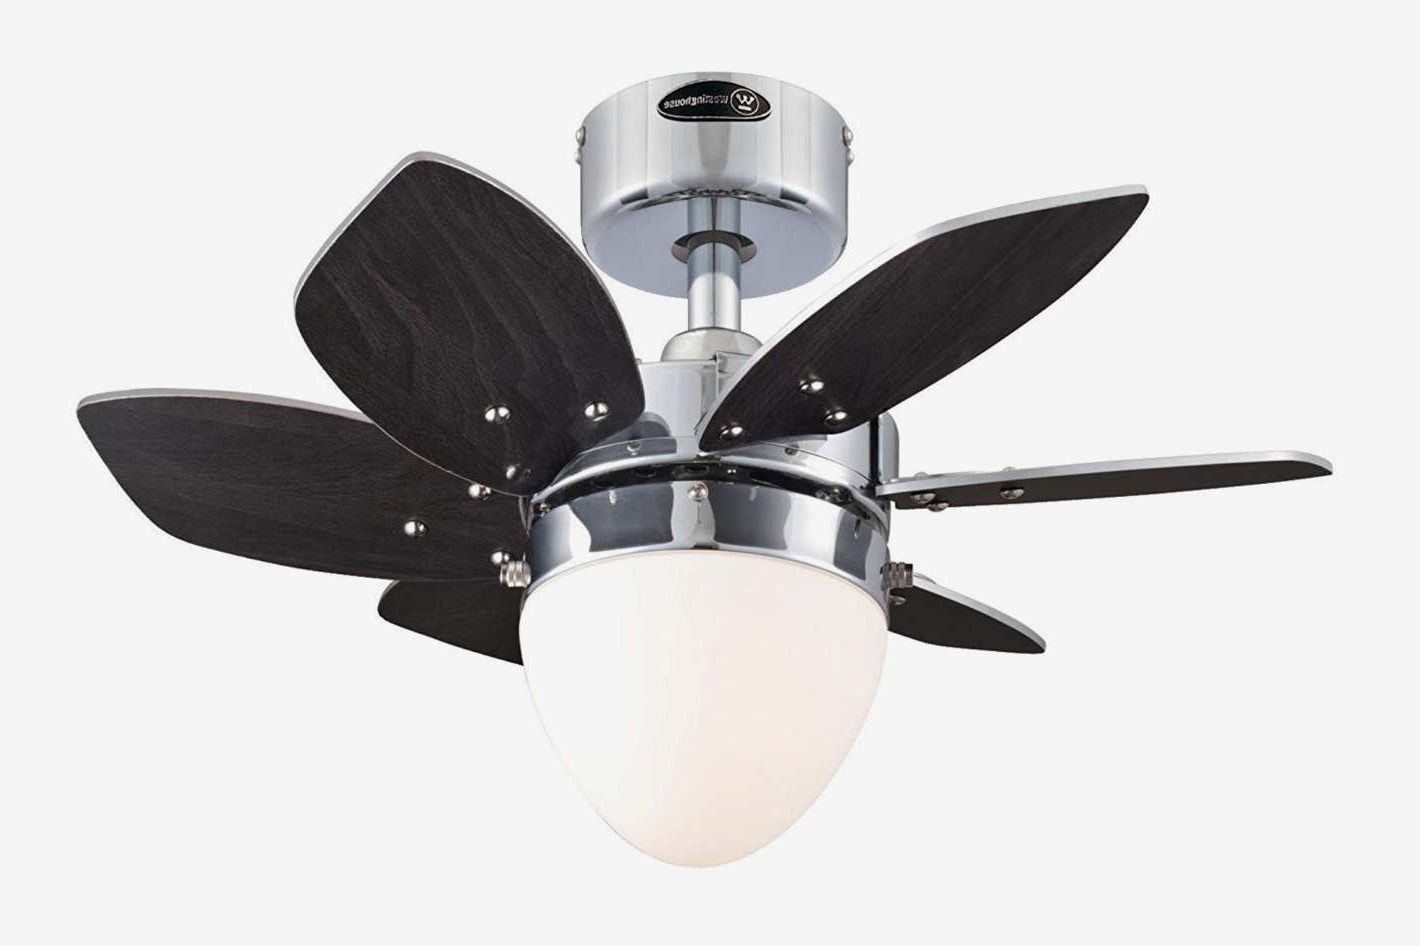 Recent The 9 Best Ceiling Fans On Amazon 2018 Inside 24 Inch Outdoor Ceiling Fans With Light (View 14 of 20)